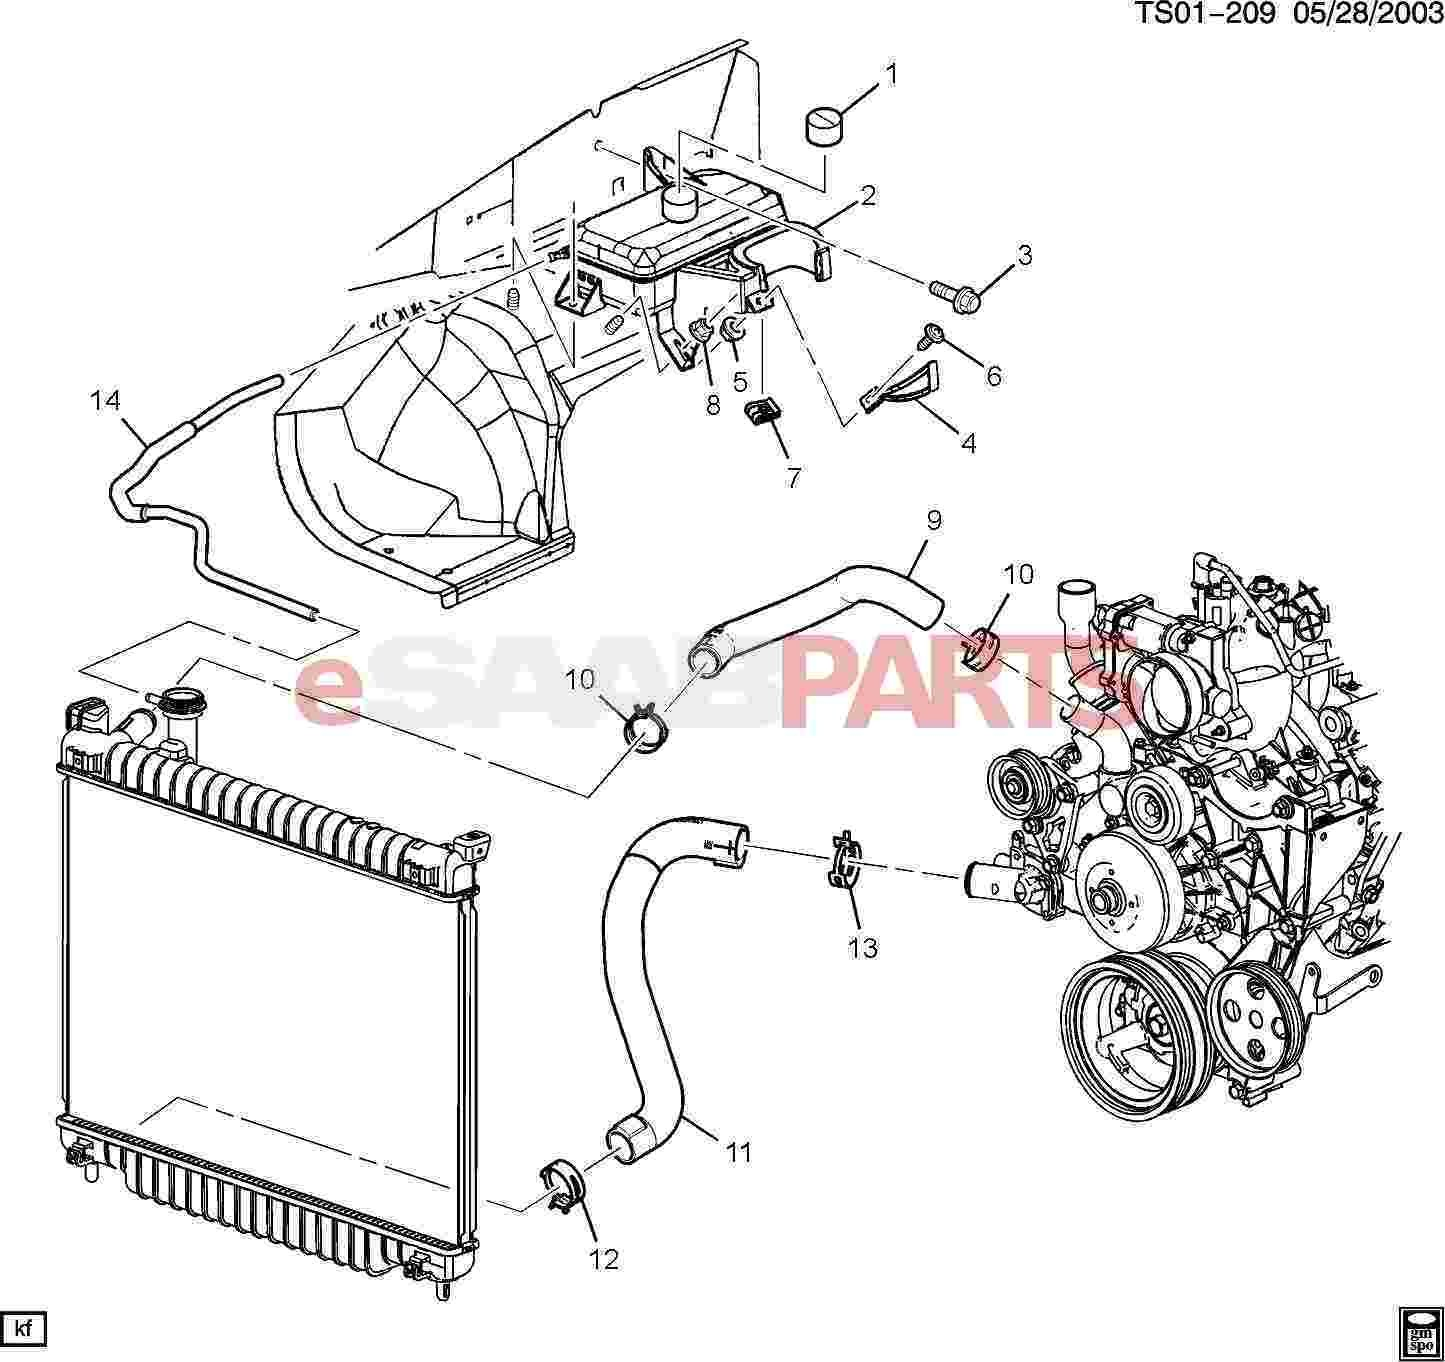 Saab 9 7x Fuse Box Diagram. Saab. Auto Fuse Box Diagram